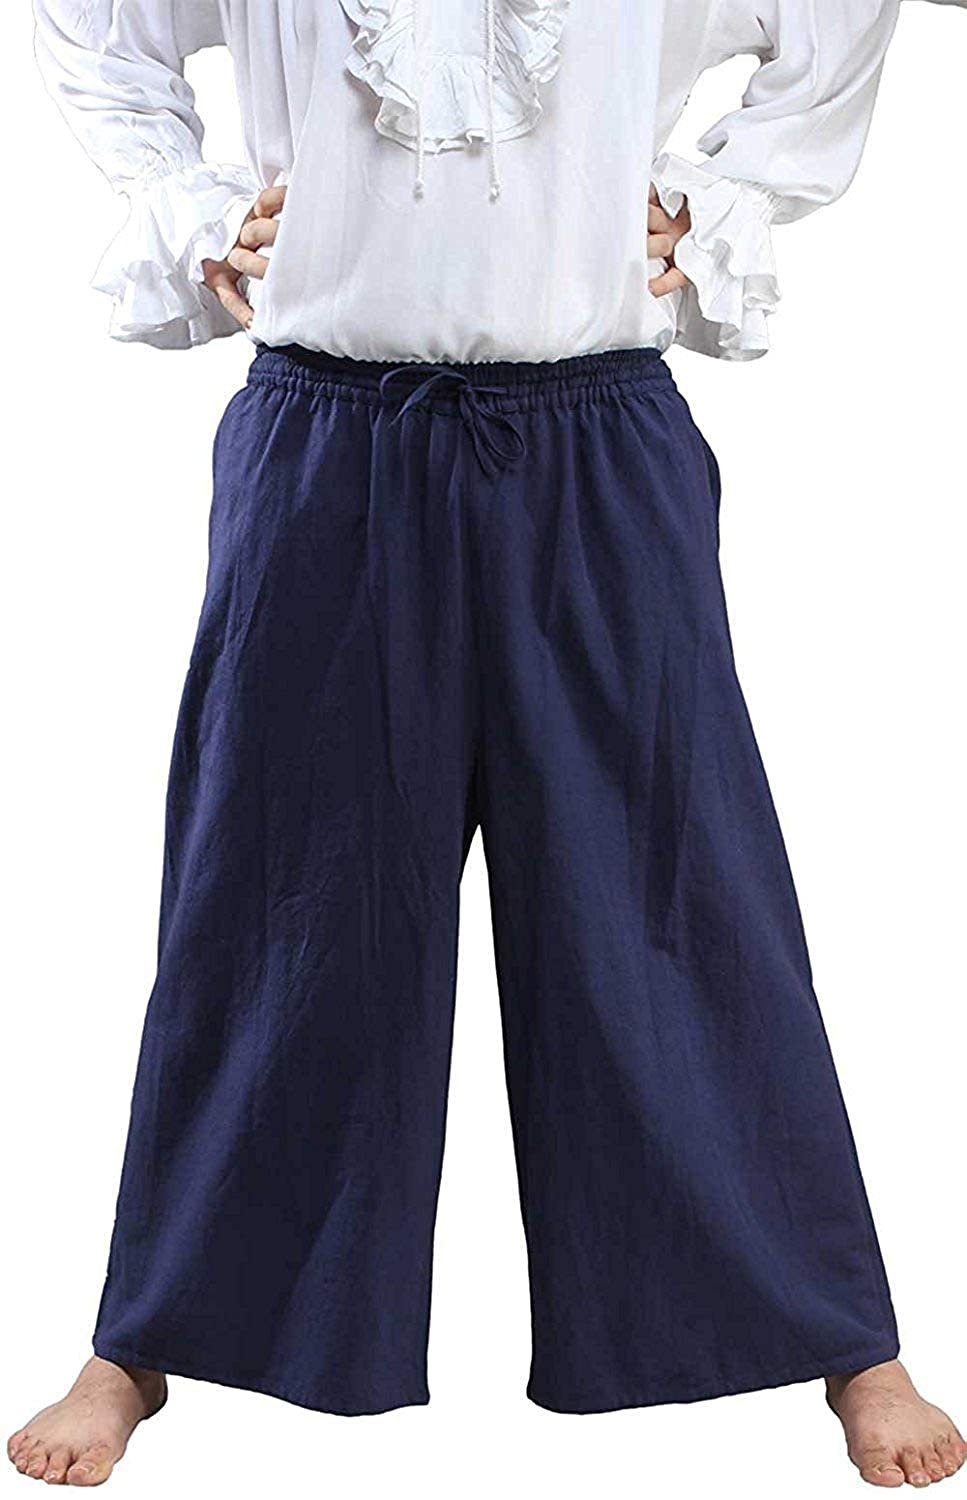 Medieval Pirate Renaissance Poet Cosplay Costume Draw String Pants C1175 C1175-Parent